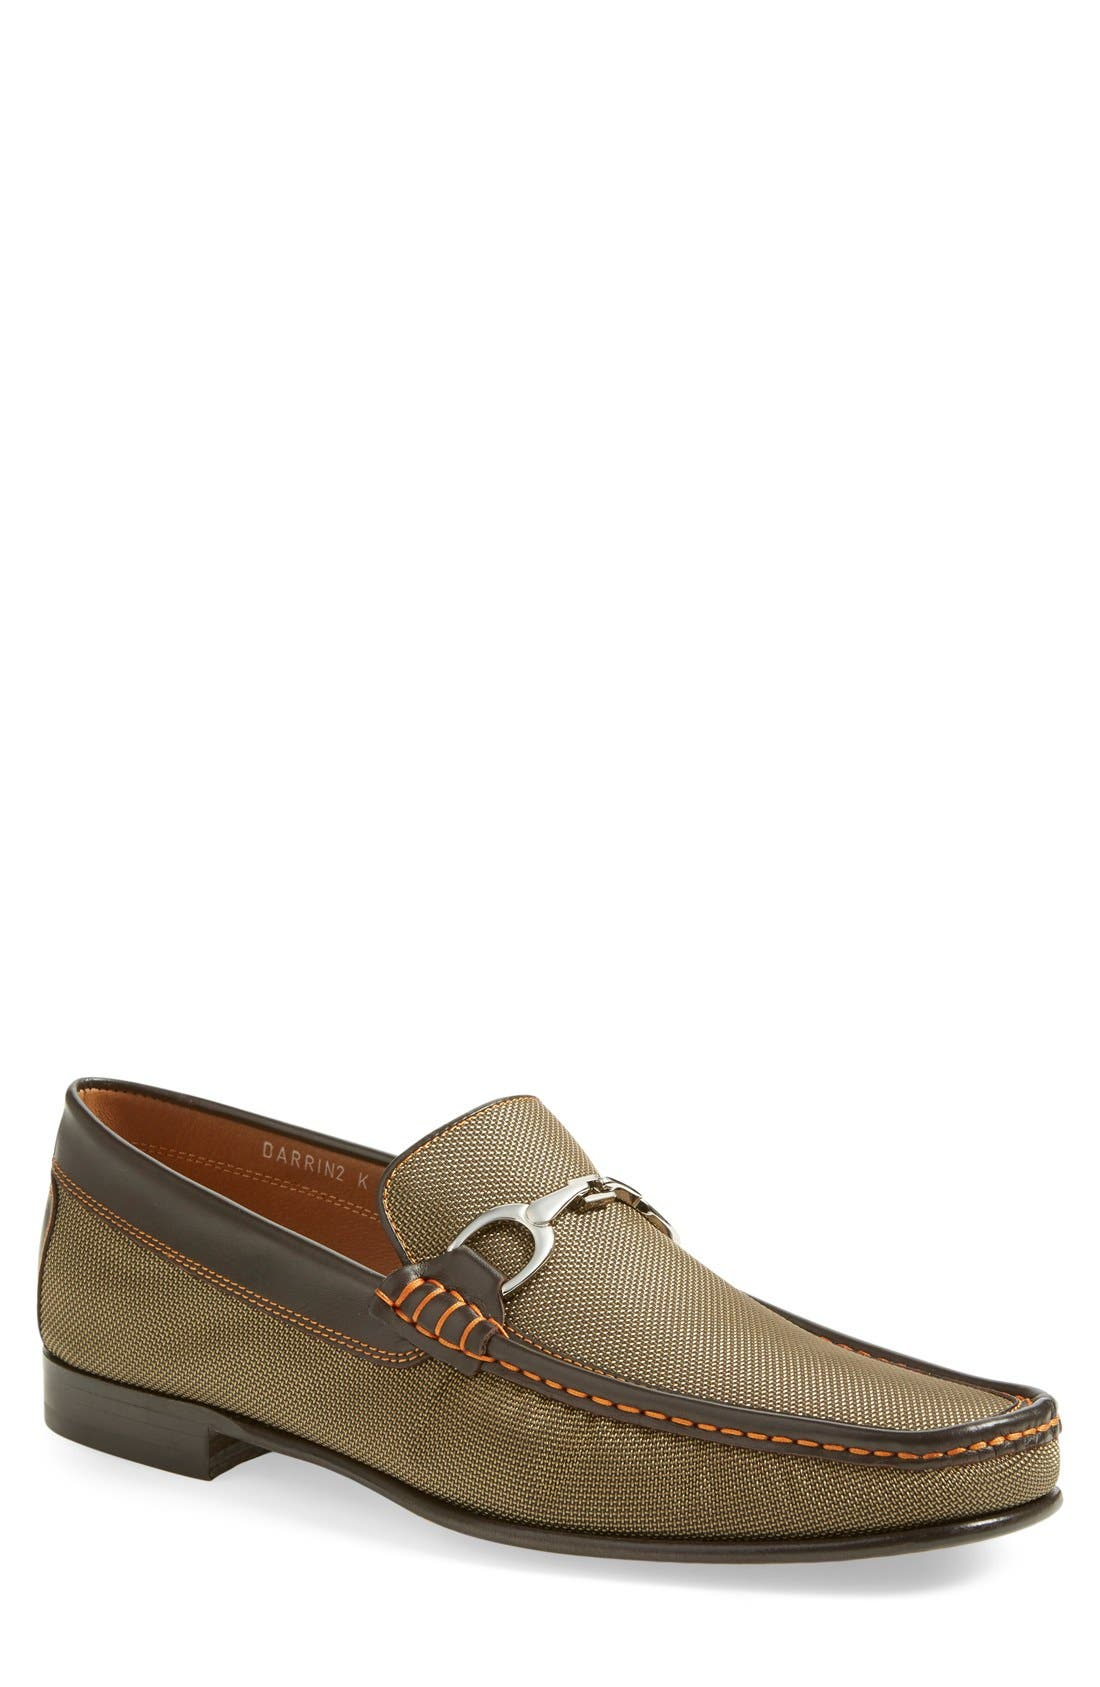 Darrin2 Bit Loafer,                         Main,                         color, Bronze Leather